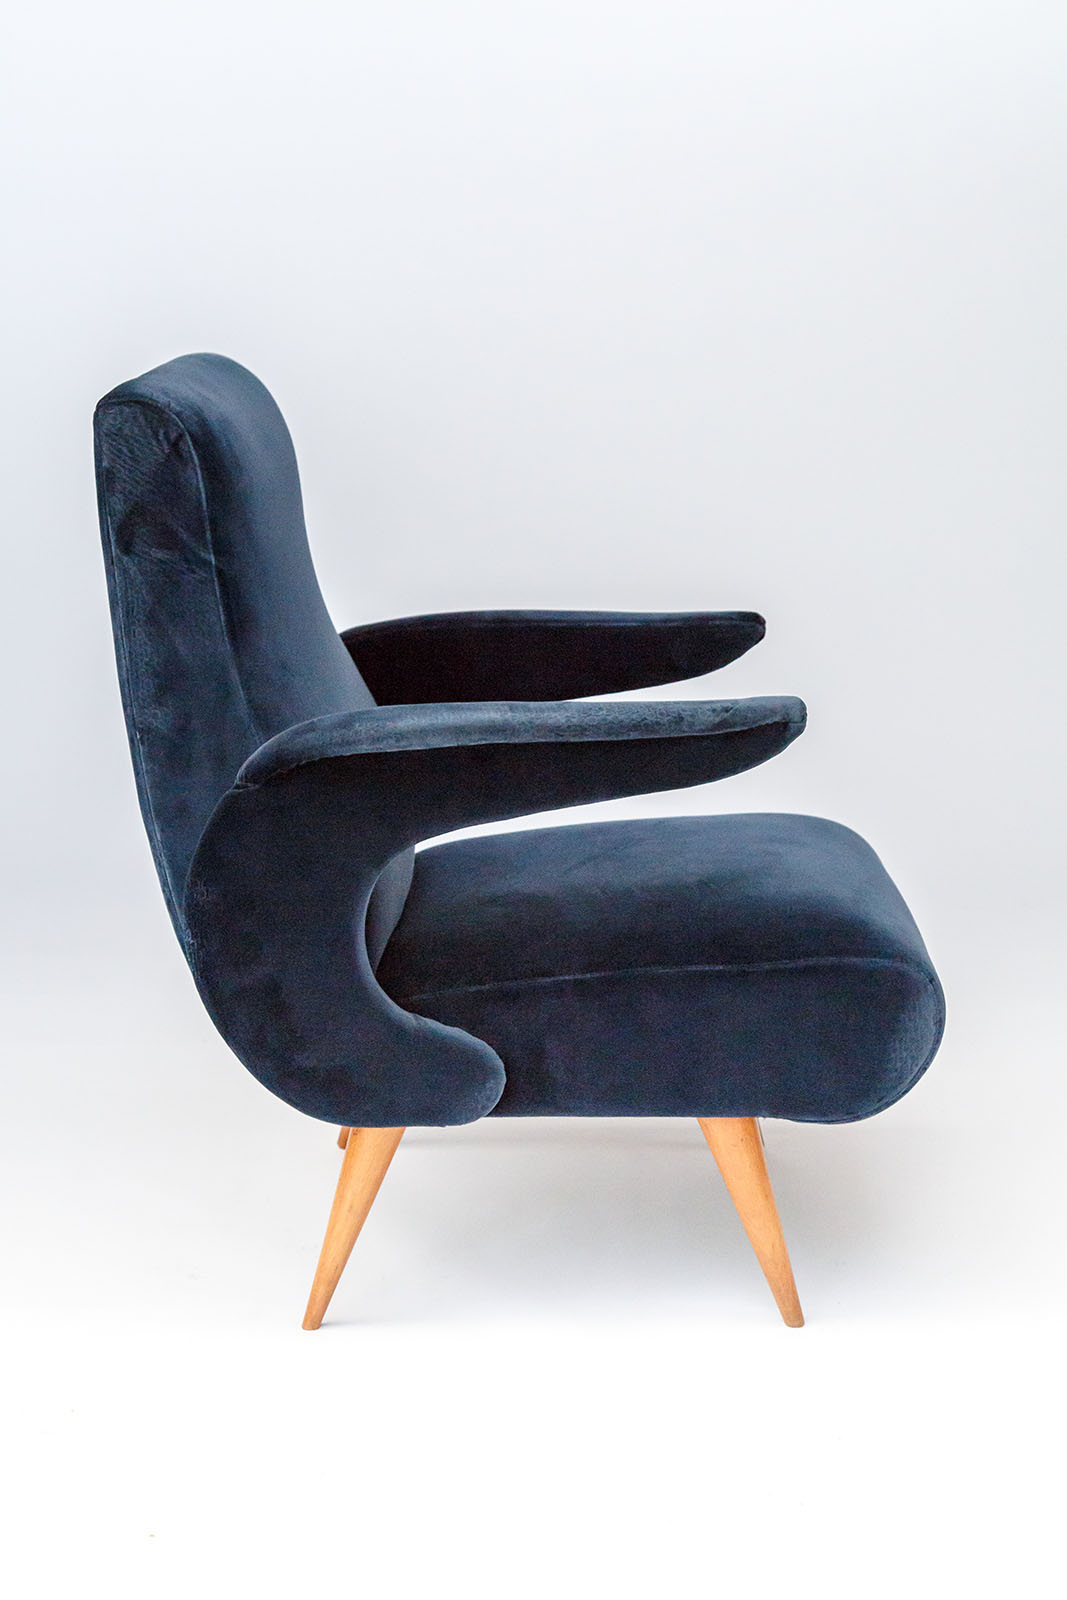 Armchair by Manifattura Cantu for sale